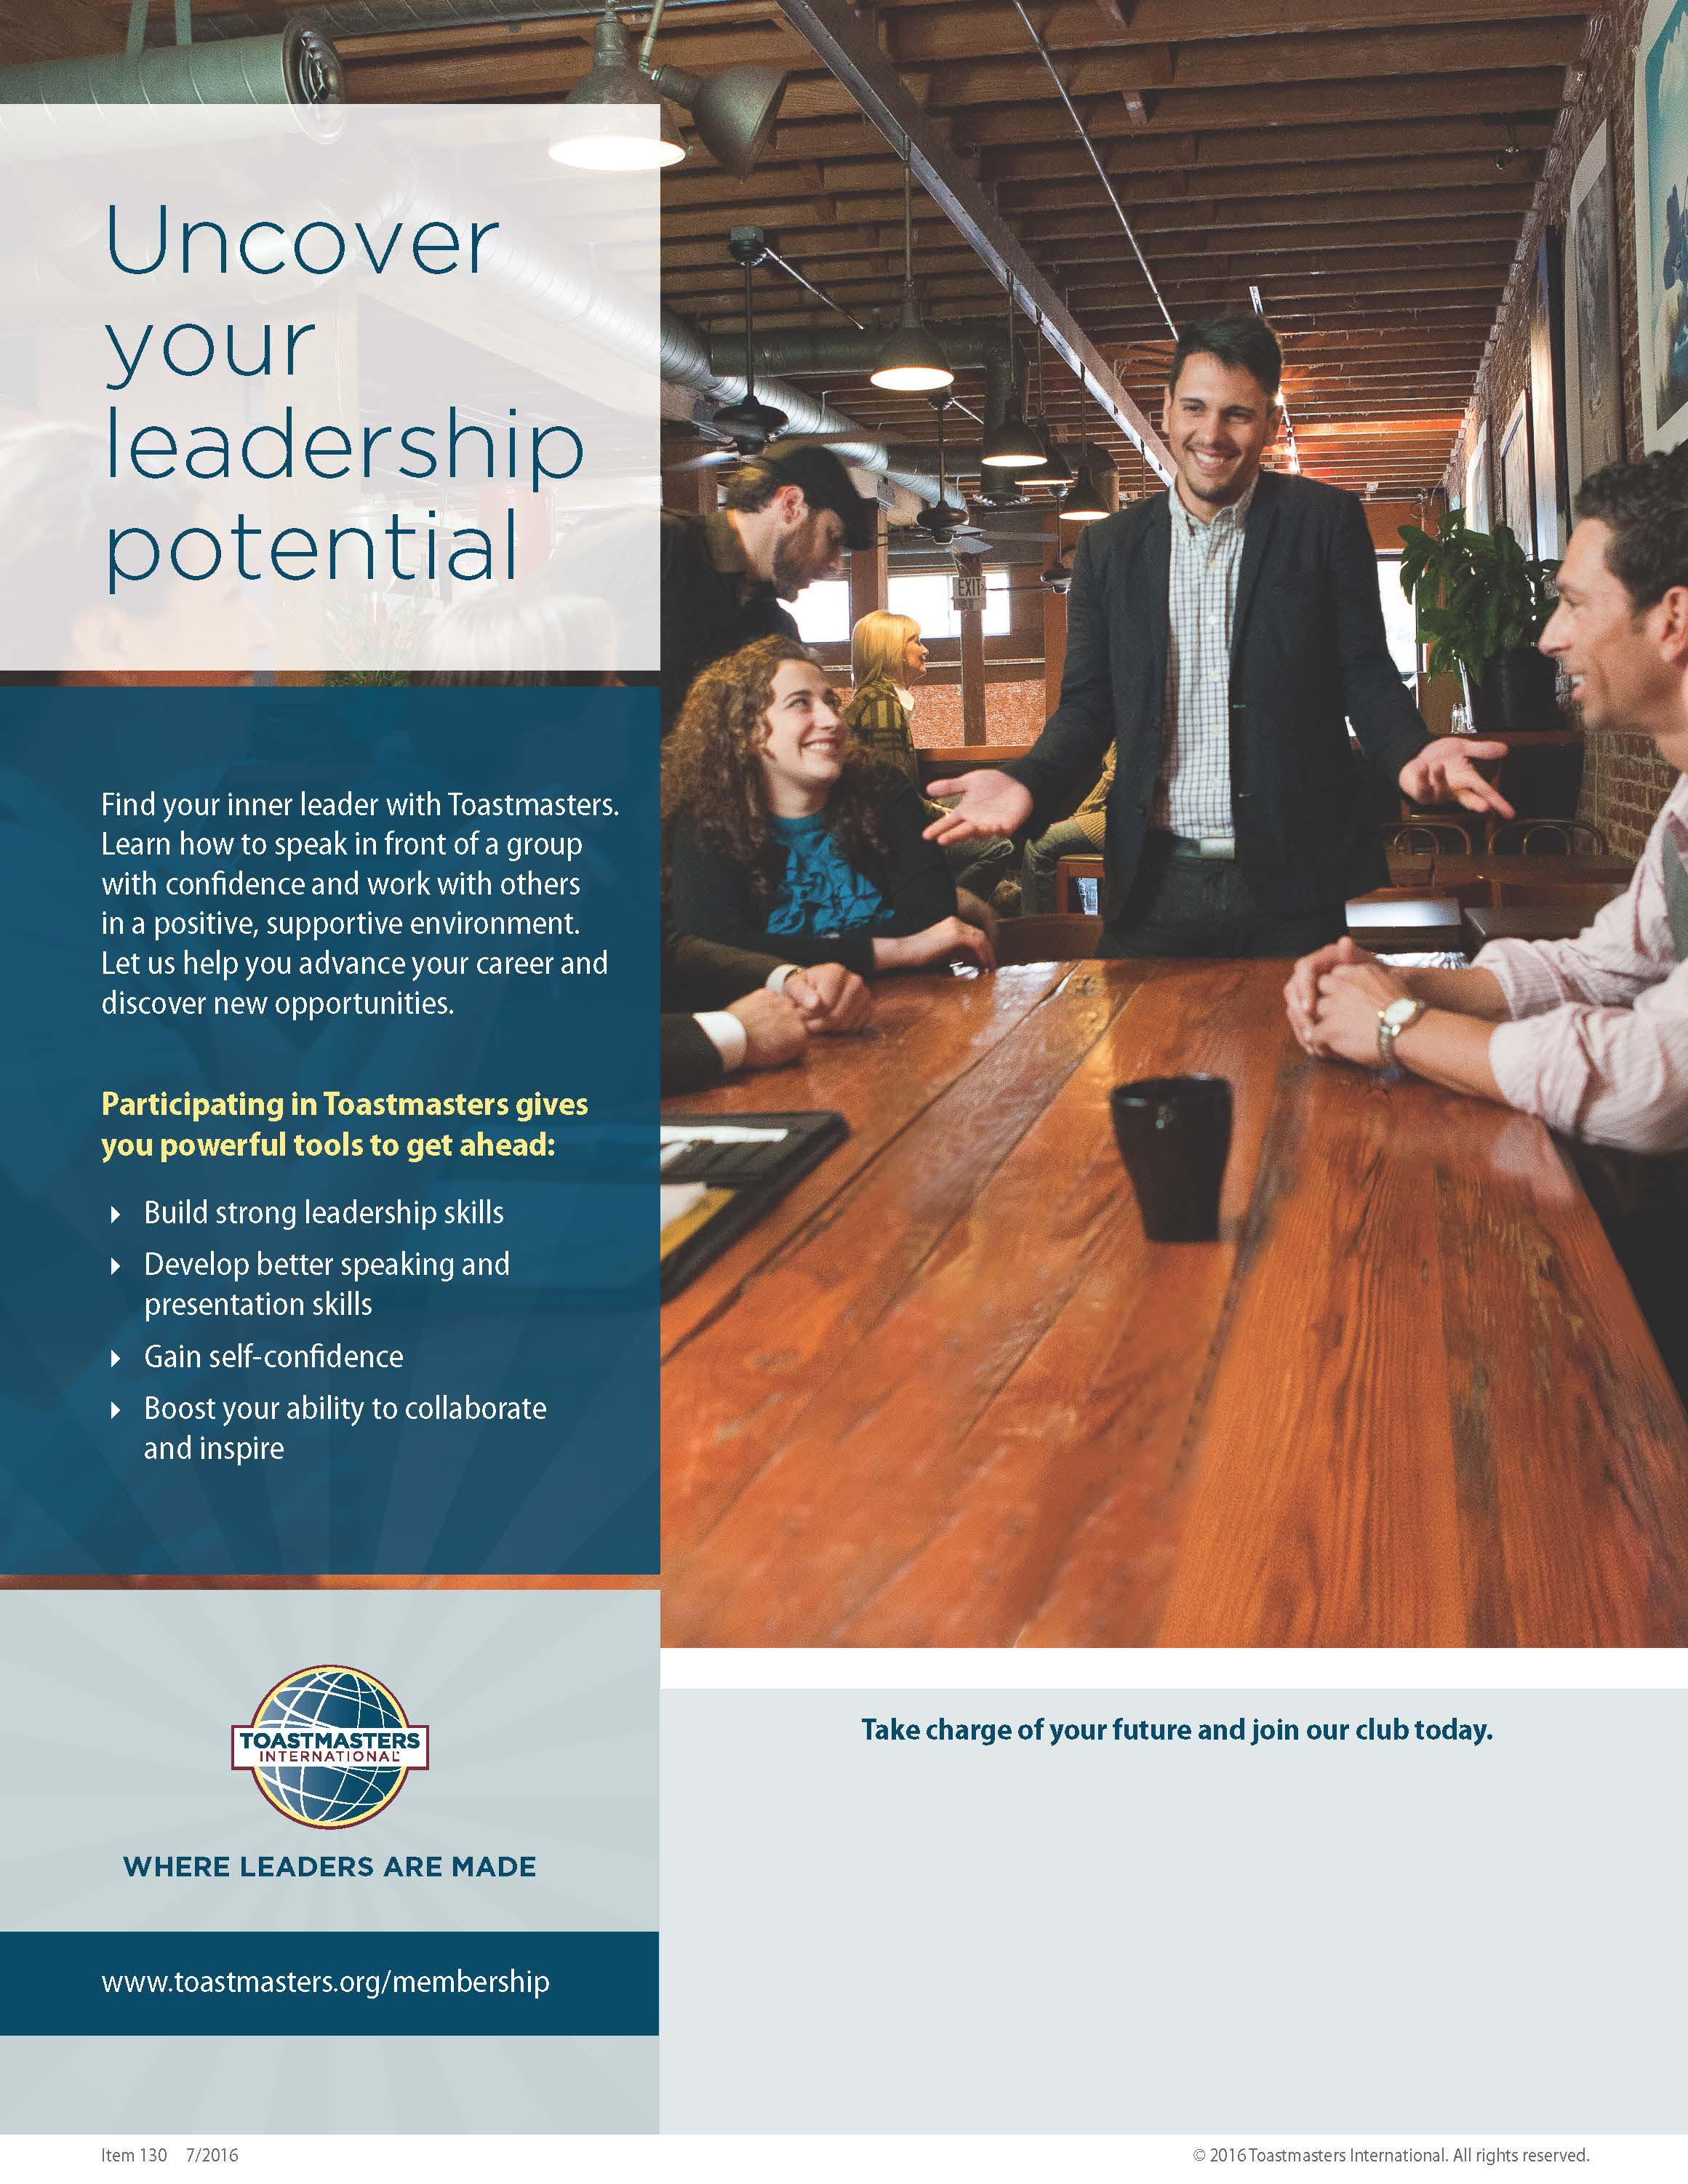 Uncover Your Leadership Potential Flier